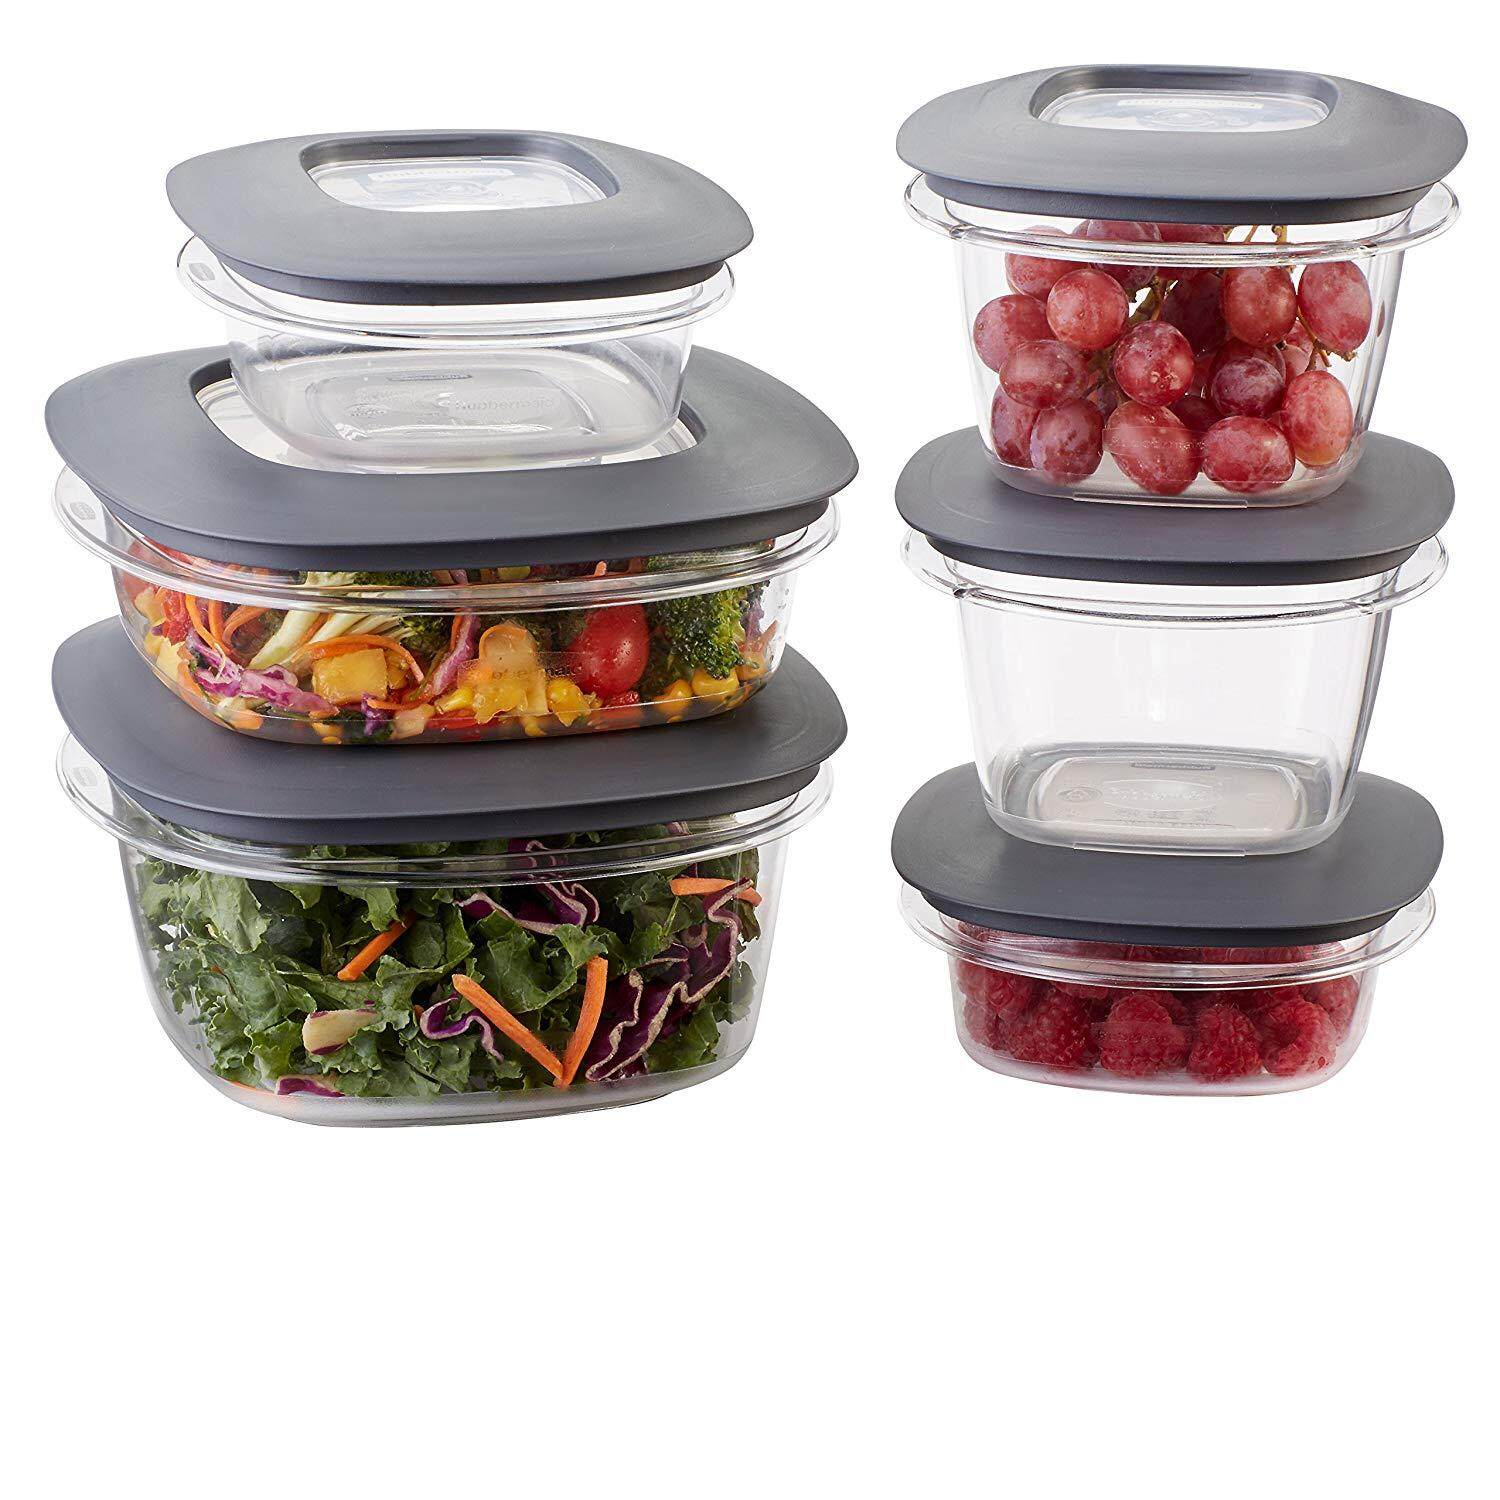 Rubbermaid Premier Easy Find Lids Food Storage Containers, Gray, Set of 12